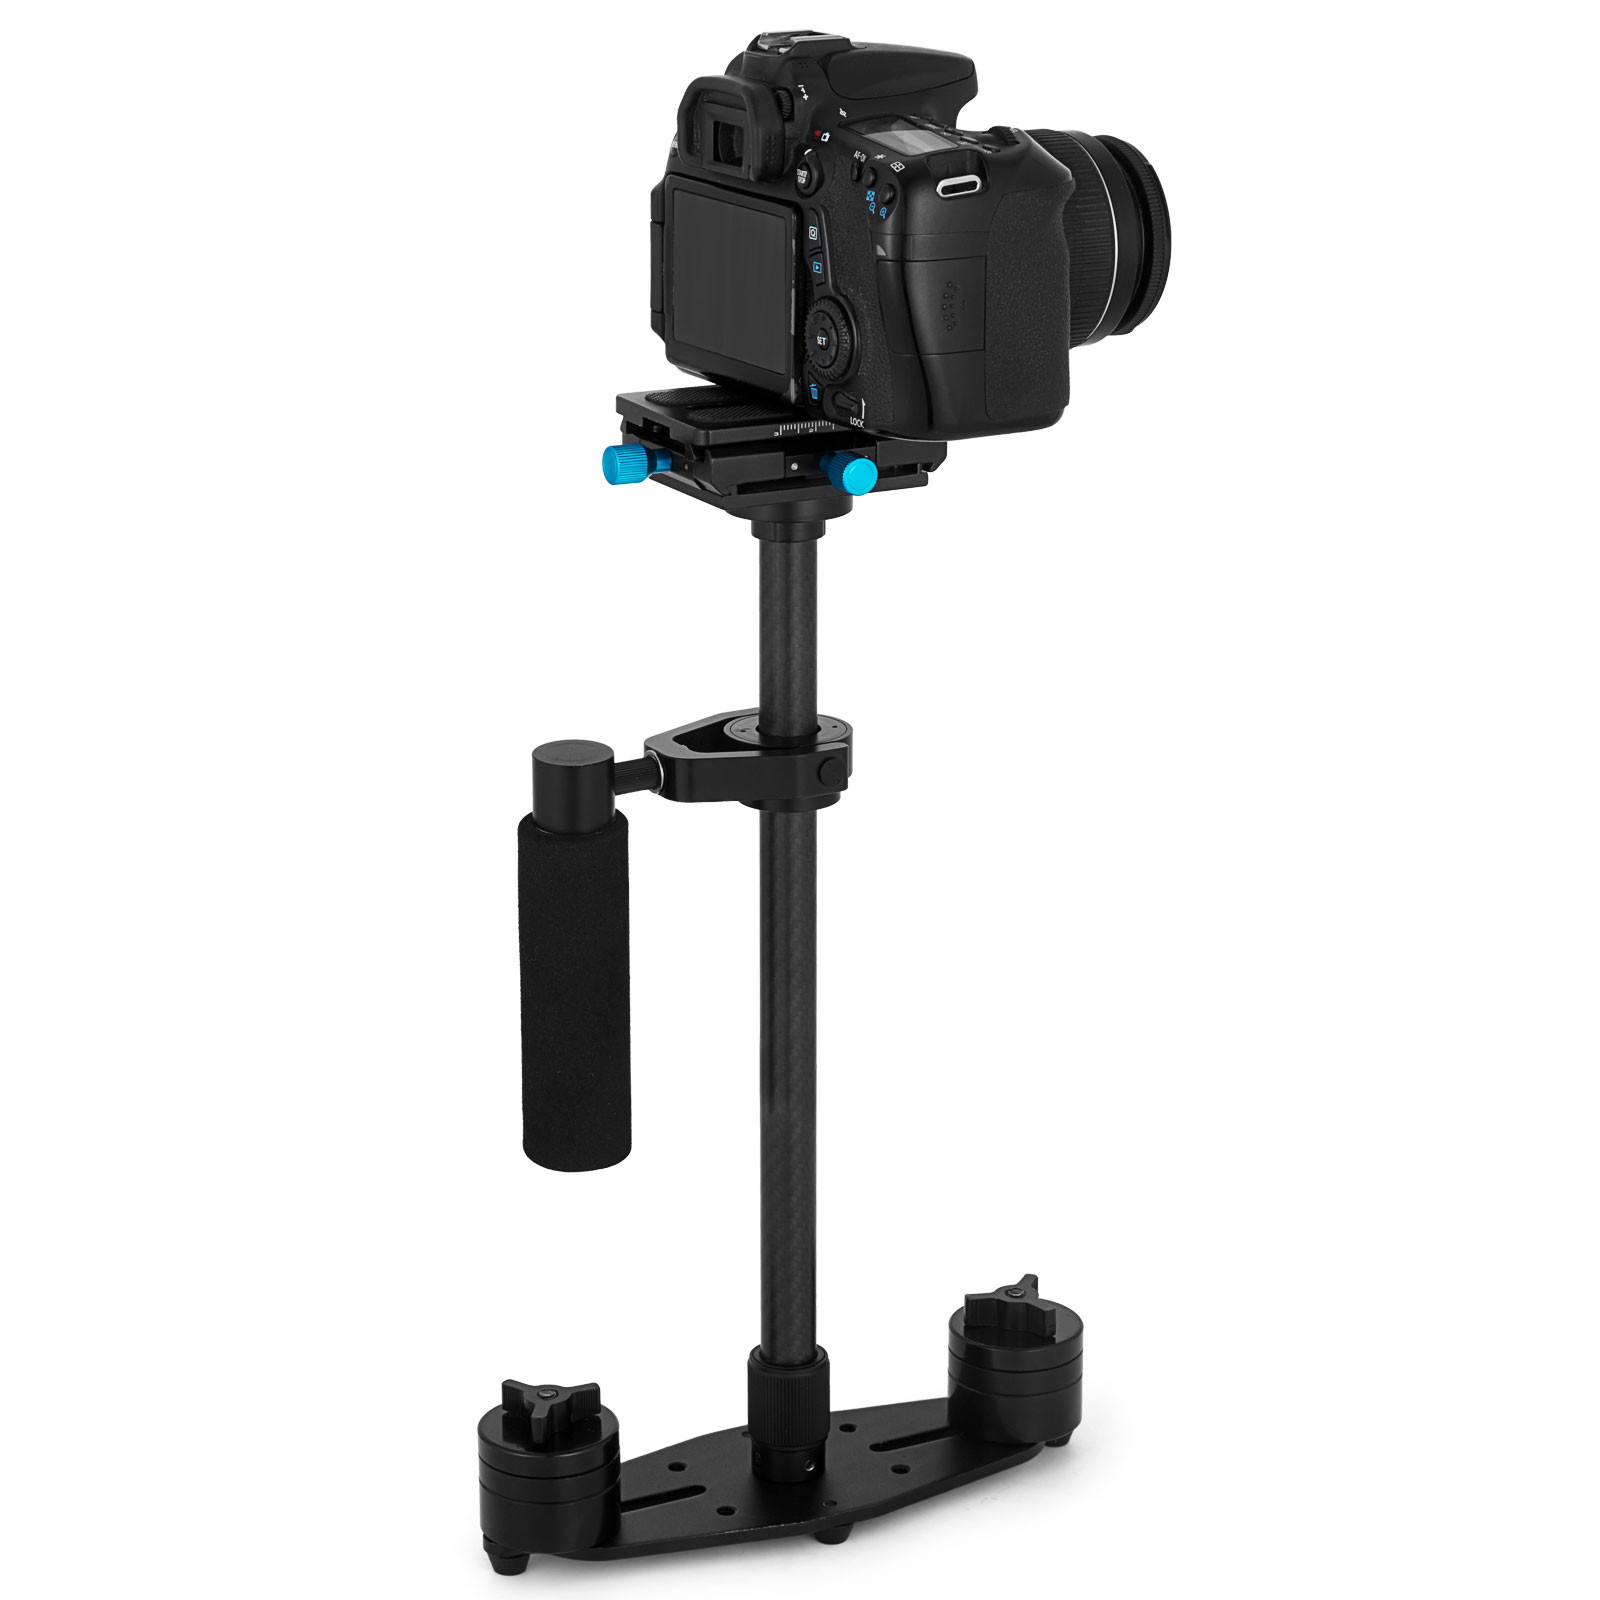 S60T-S60N-Handheld-Steady-Stabilizer-360-For-DSLR-Canon-Camera thumbnail 28